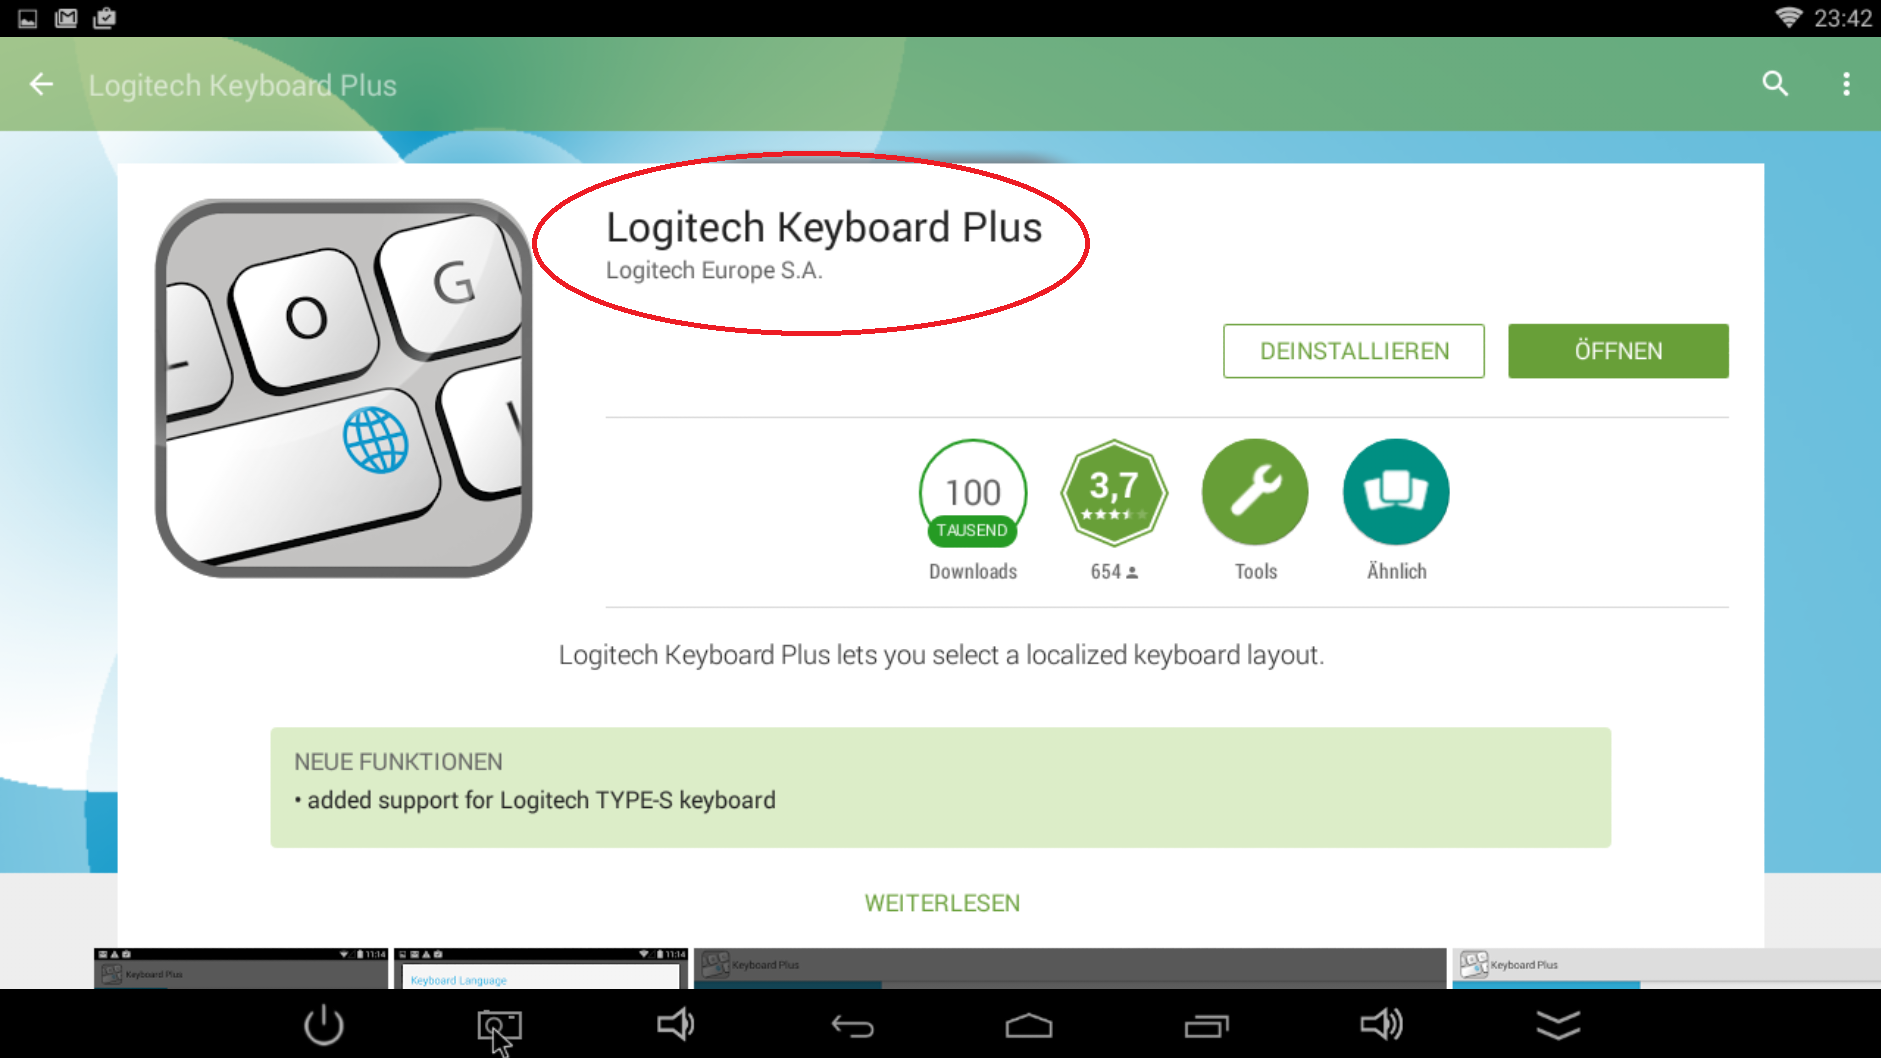 App Logitech Keyboard Plus shown at Google Play Store